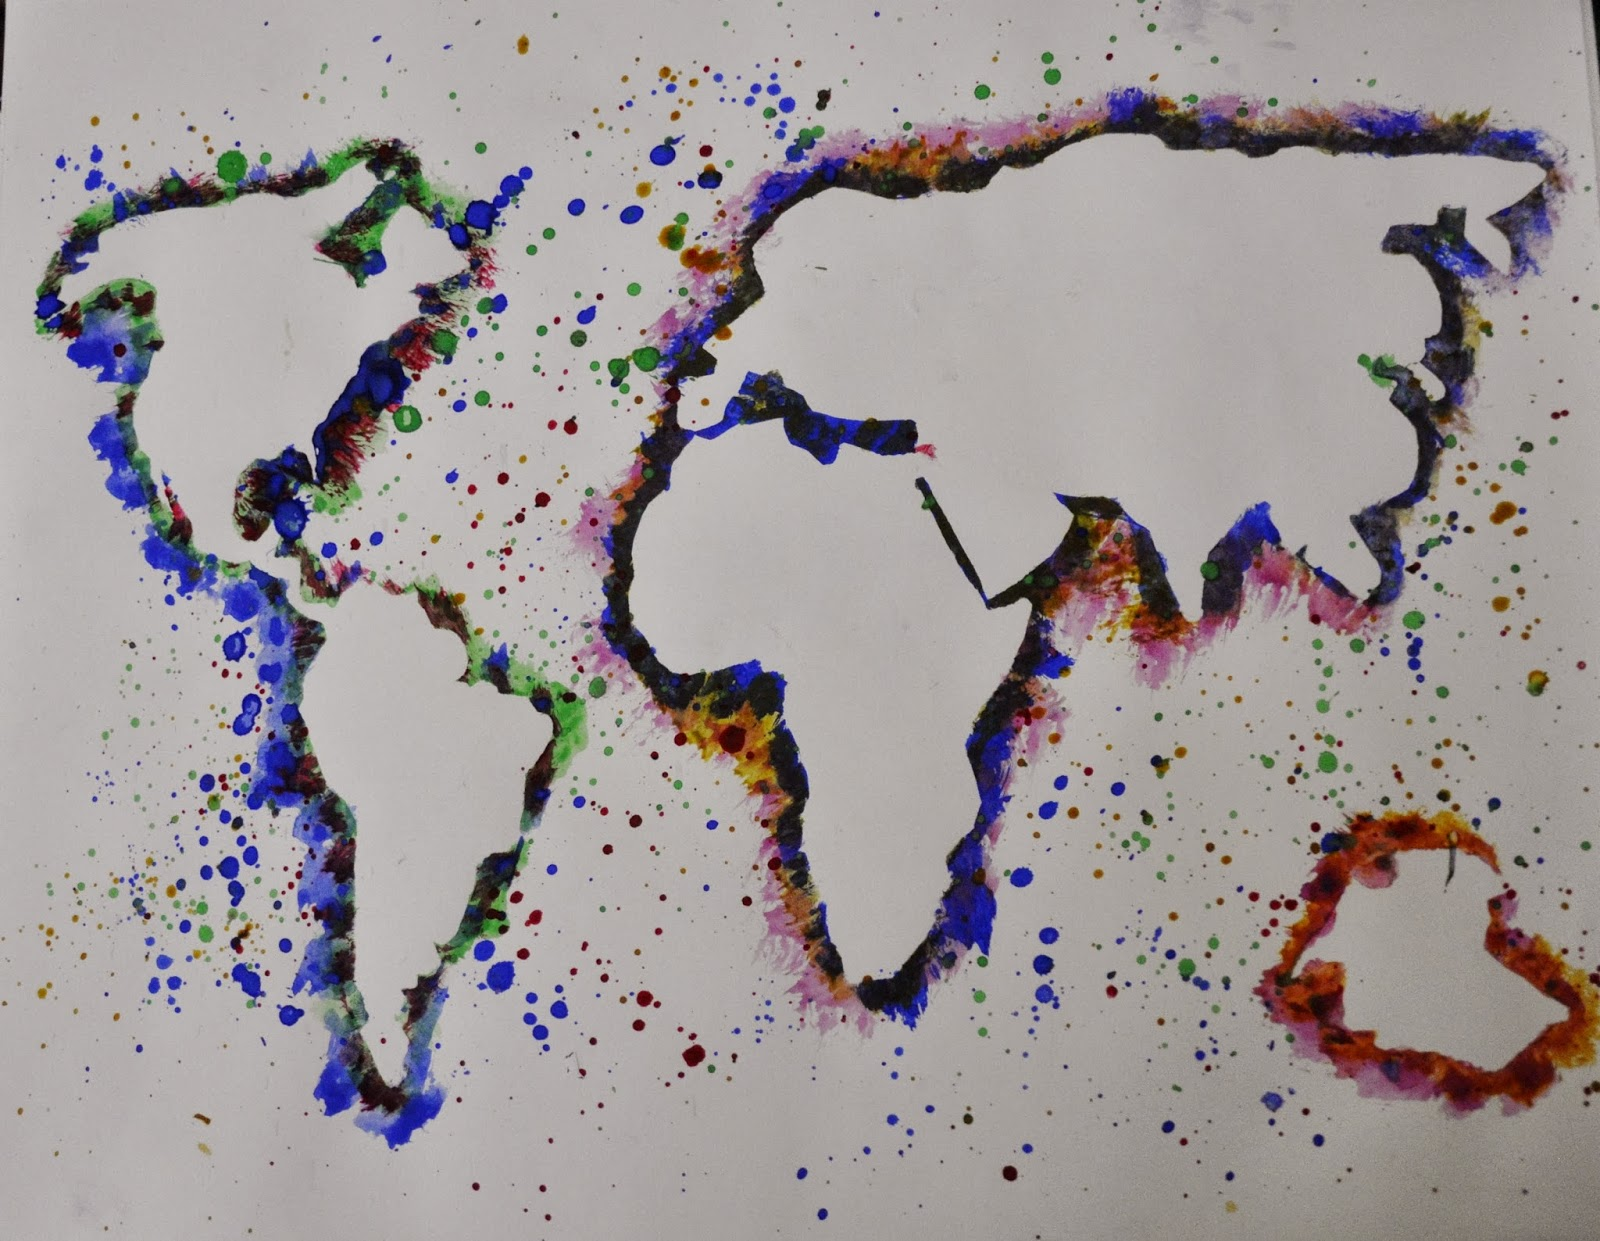 World Map ~ Fine-Art Print - Geography Art Prints and Posters ...